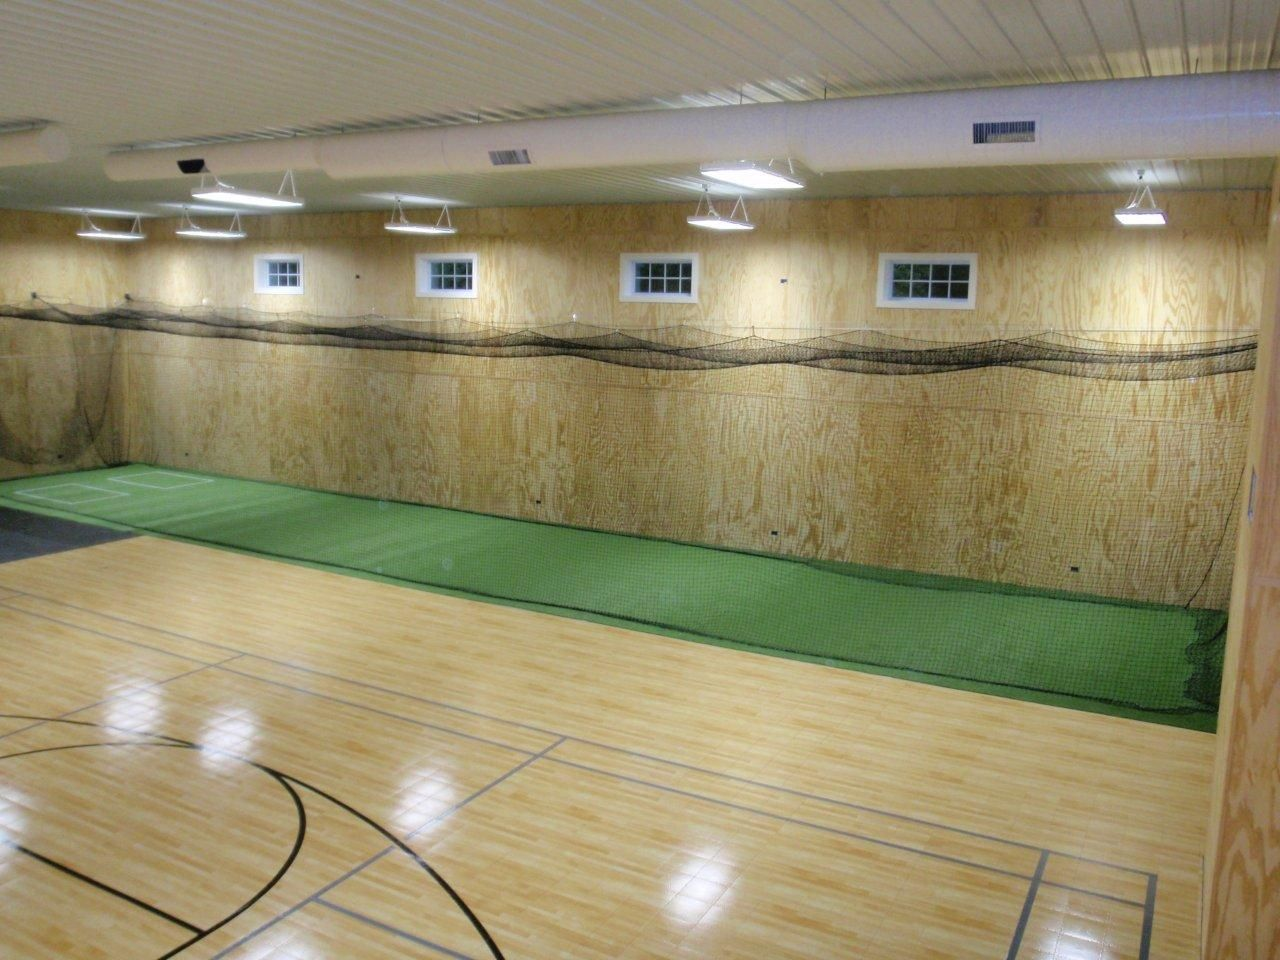 Residential Indoor Courts Gallery Sport Court Midwest Home Basketball Court Indoor Gym Backyard Sports